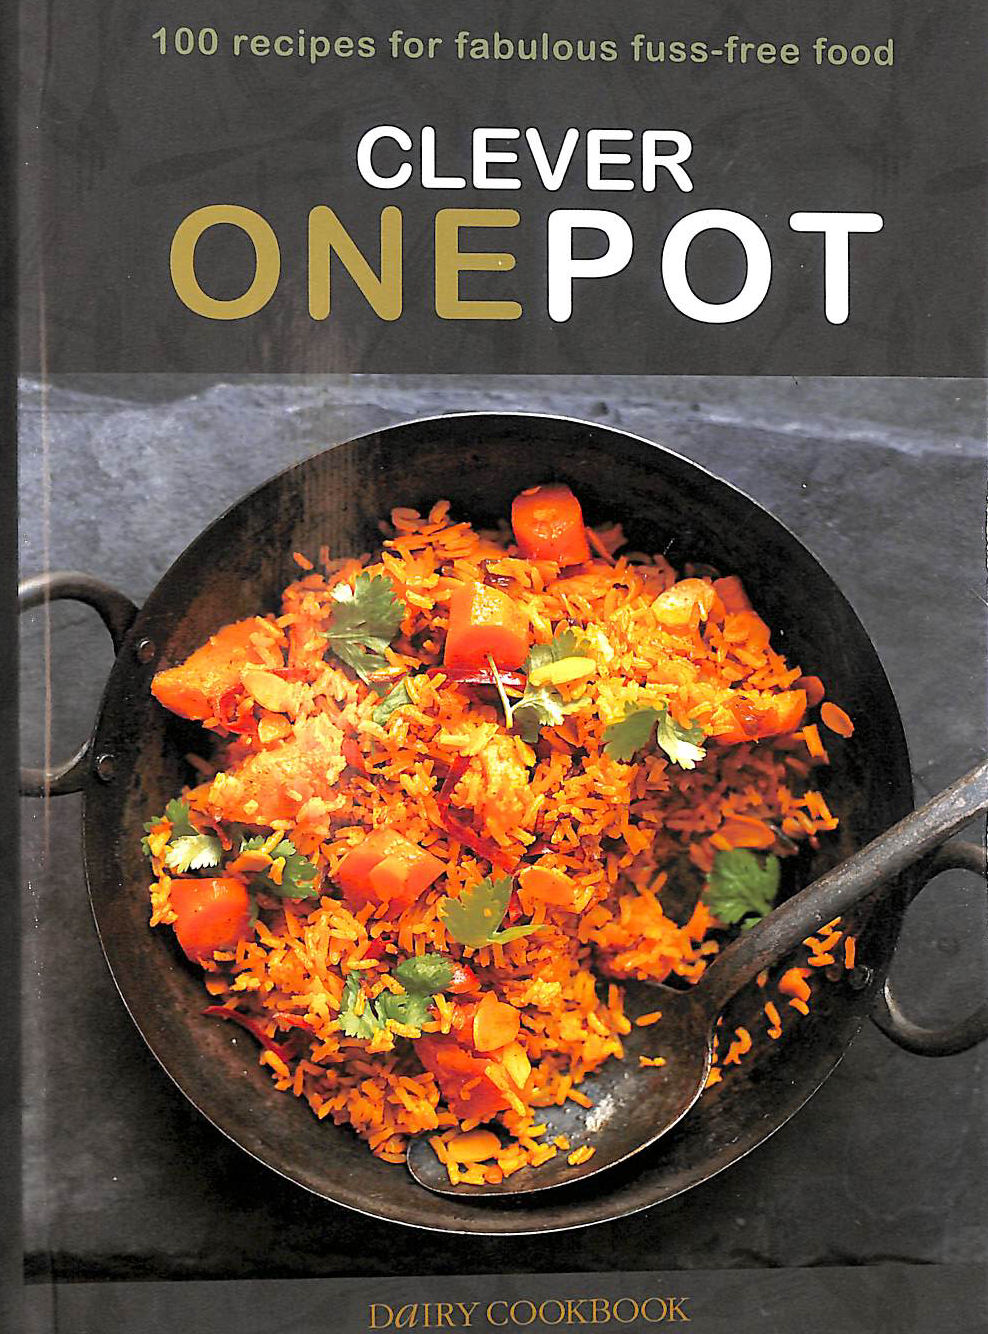 Image for Clever One Pot: Fabulous Fuss-free Food (Dairy Cookbook)